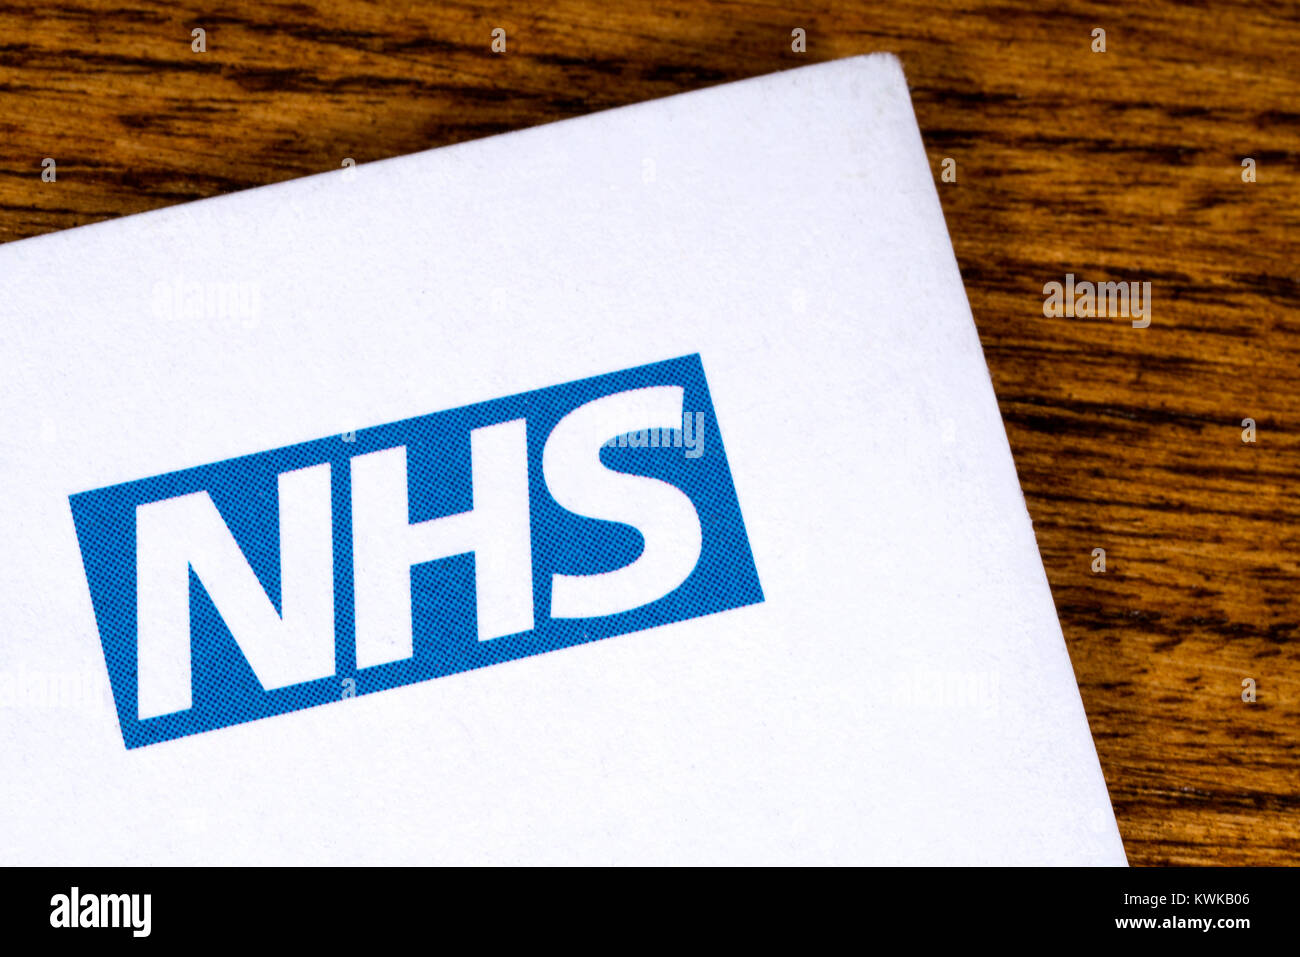 LONDON, UK - DECEMBER 18TH 2017: Close-up of the National Health Service logo on a letterhead, on 18th December - Stock Image